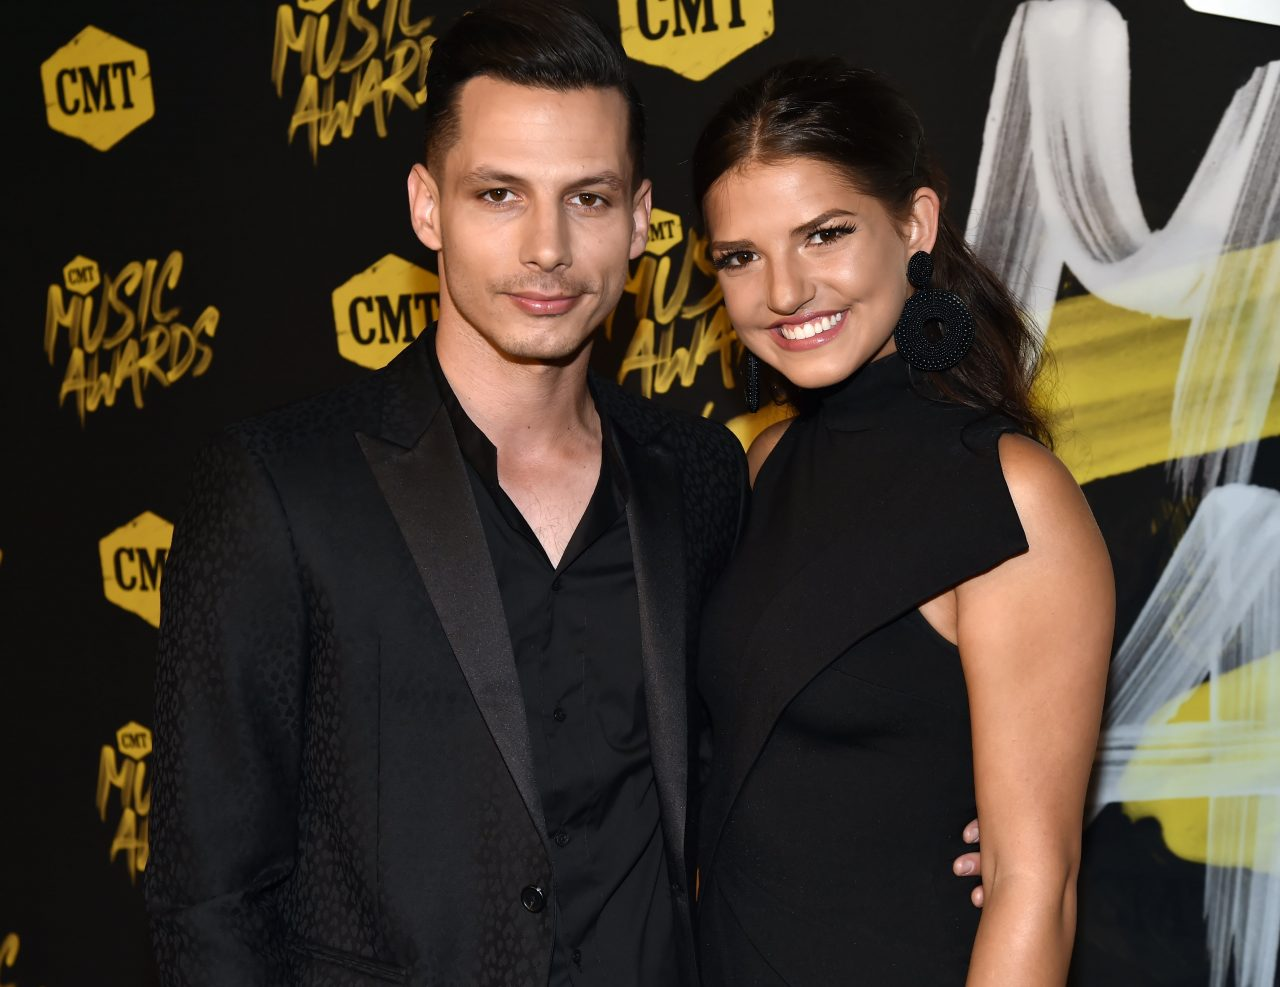 Devin Dawson Proposes to Longtime Girlfriend, Leah Sykes